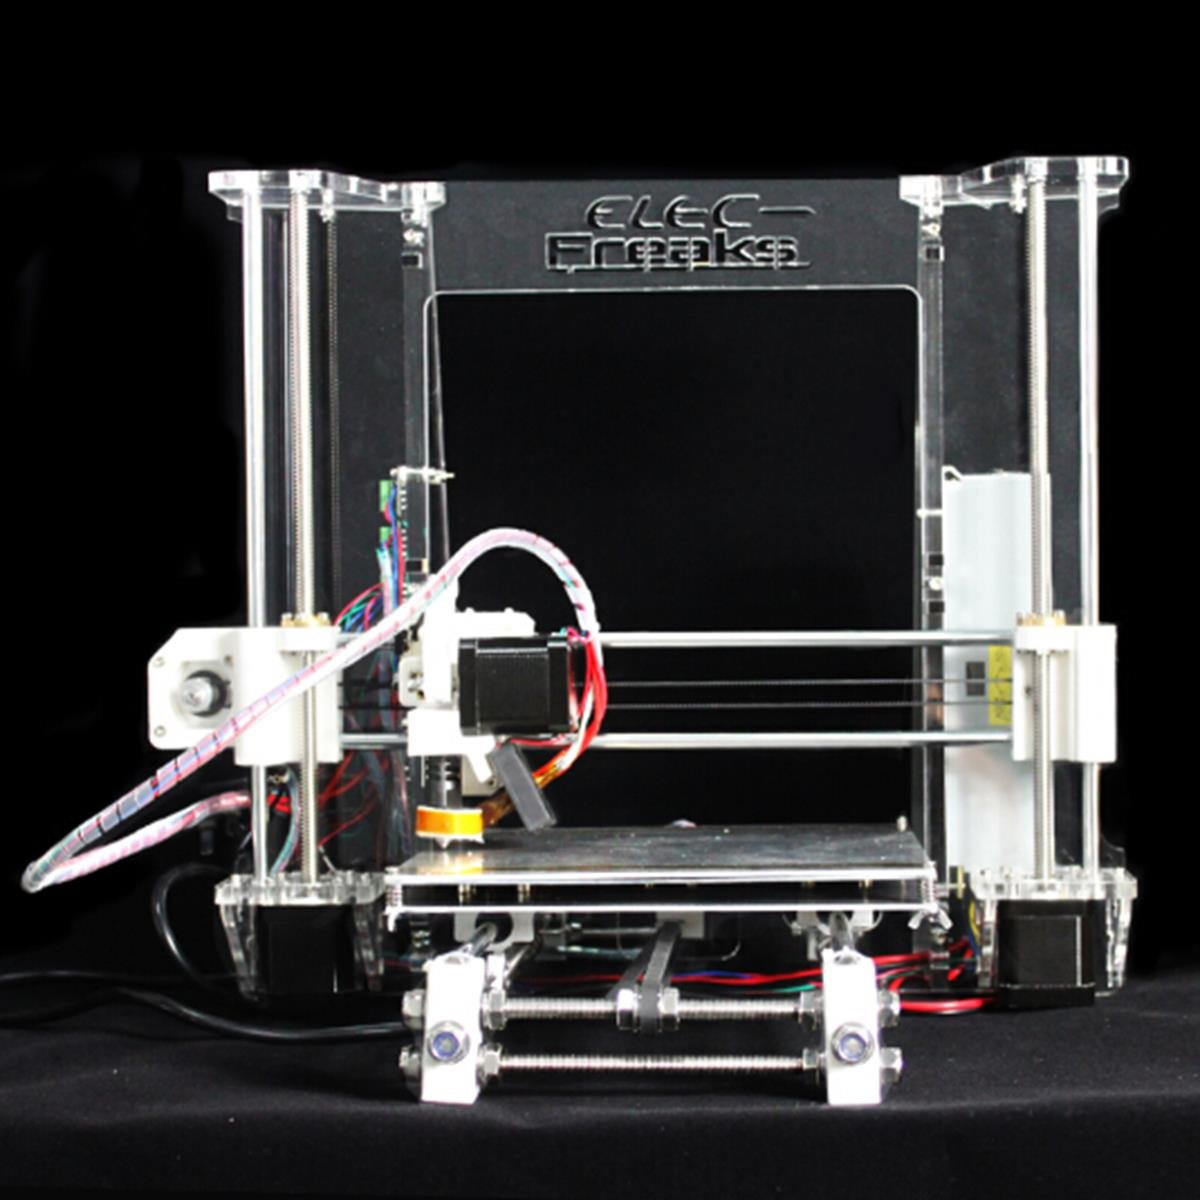 3D Printer Reprap Boards Prusa I3 Full Eboti3 Reprap Prusa I3 (Aluminium Frame) Full Kit newest upgraded quality high precision reprap prusa i3 diy 3d printer kit with 1 roll filament 8gb sd card and lcd for free